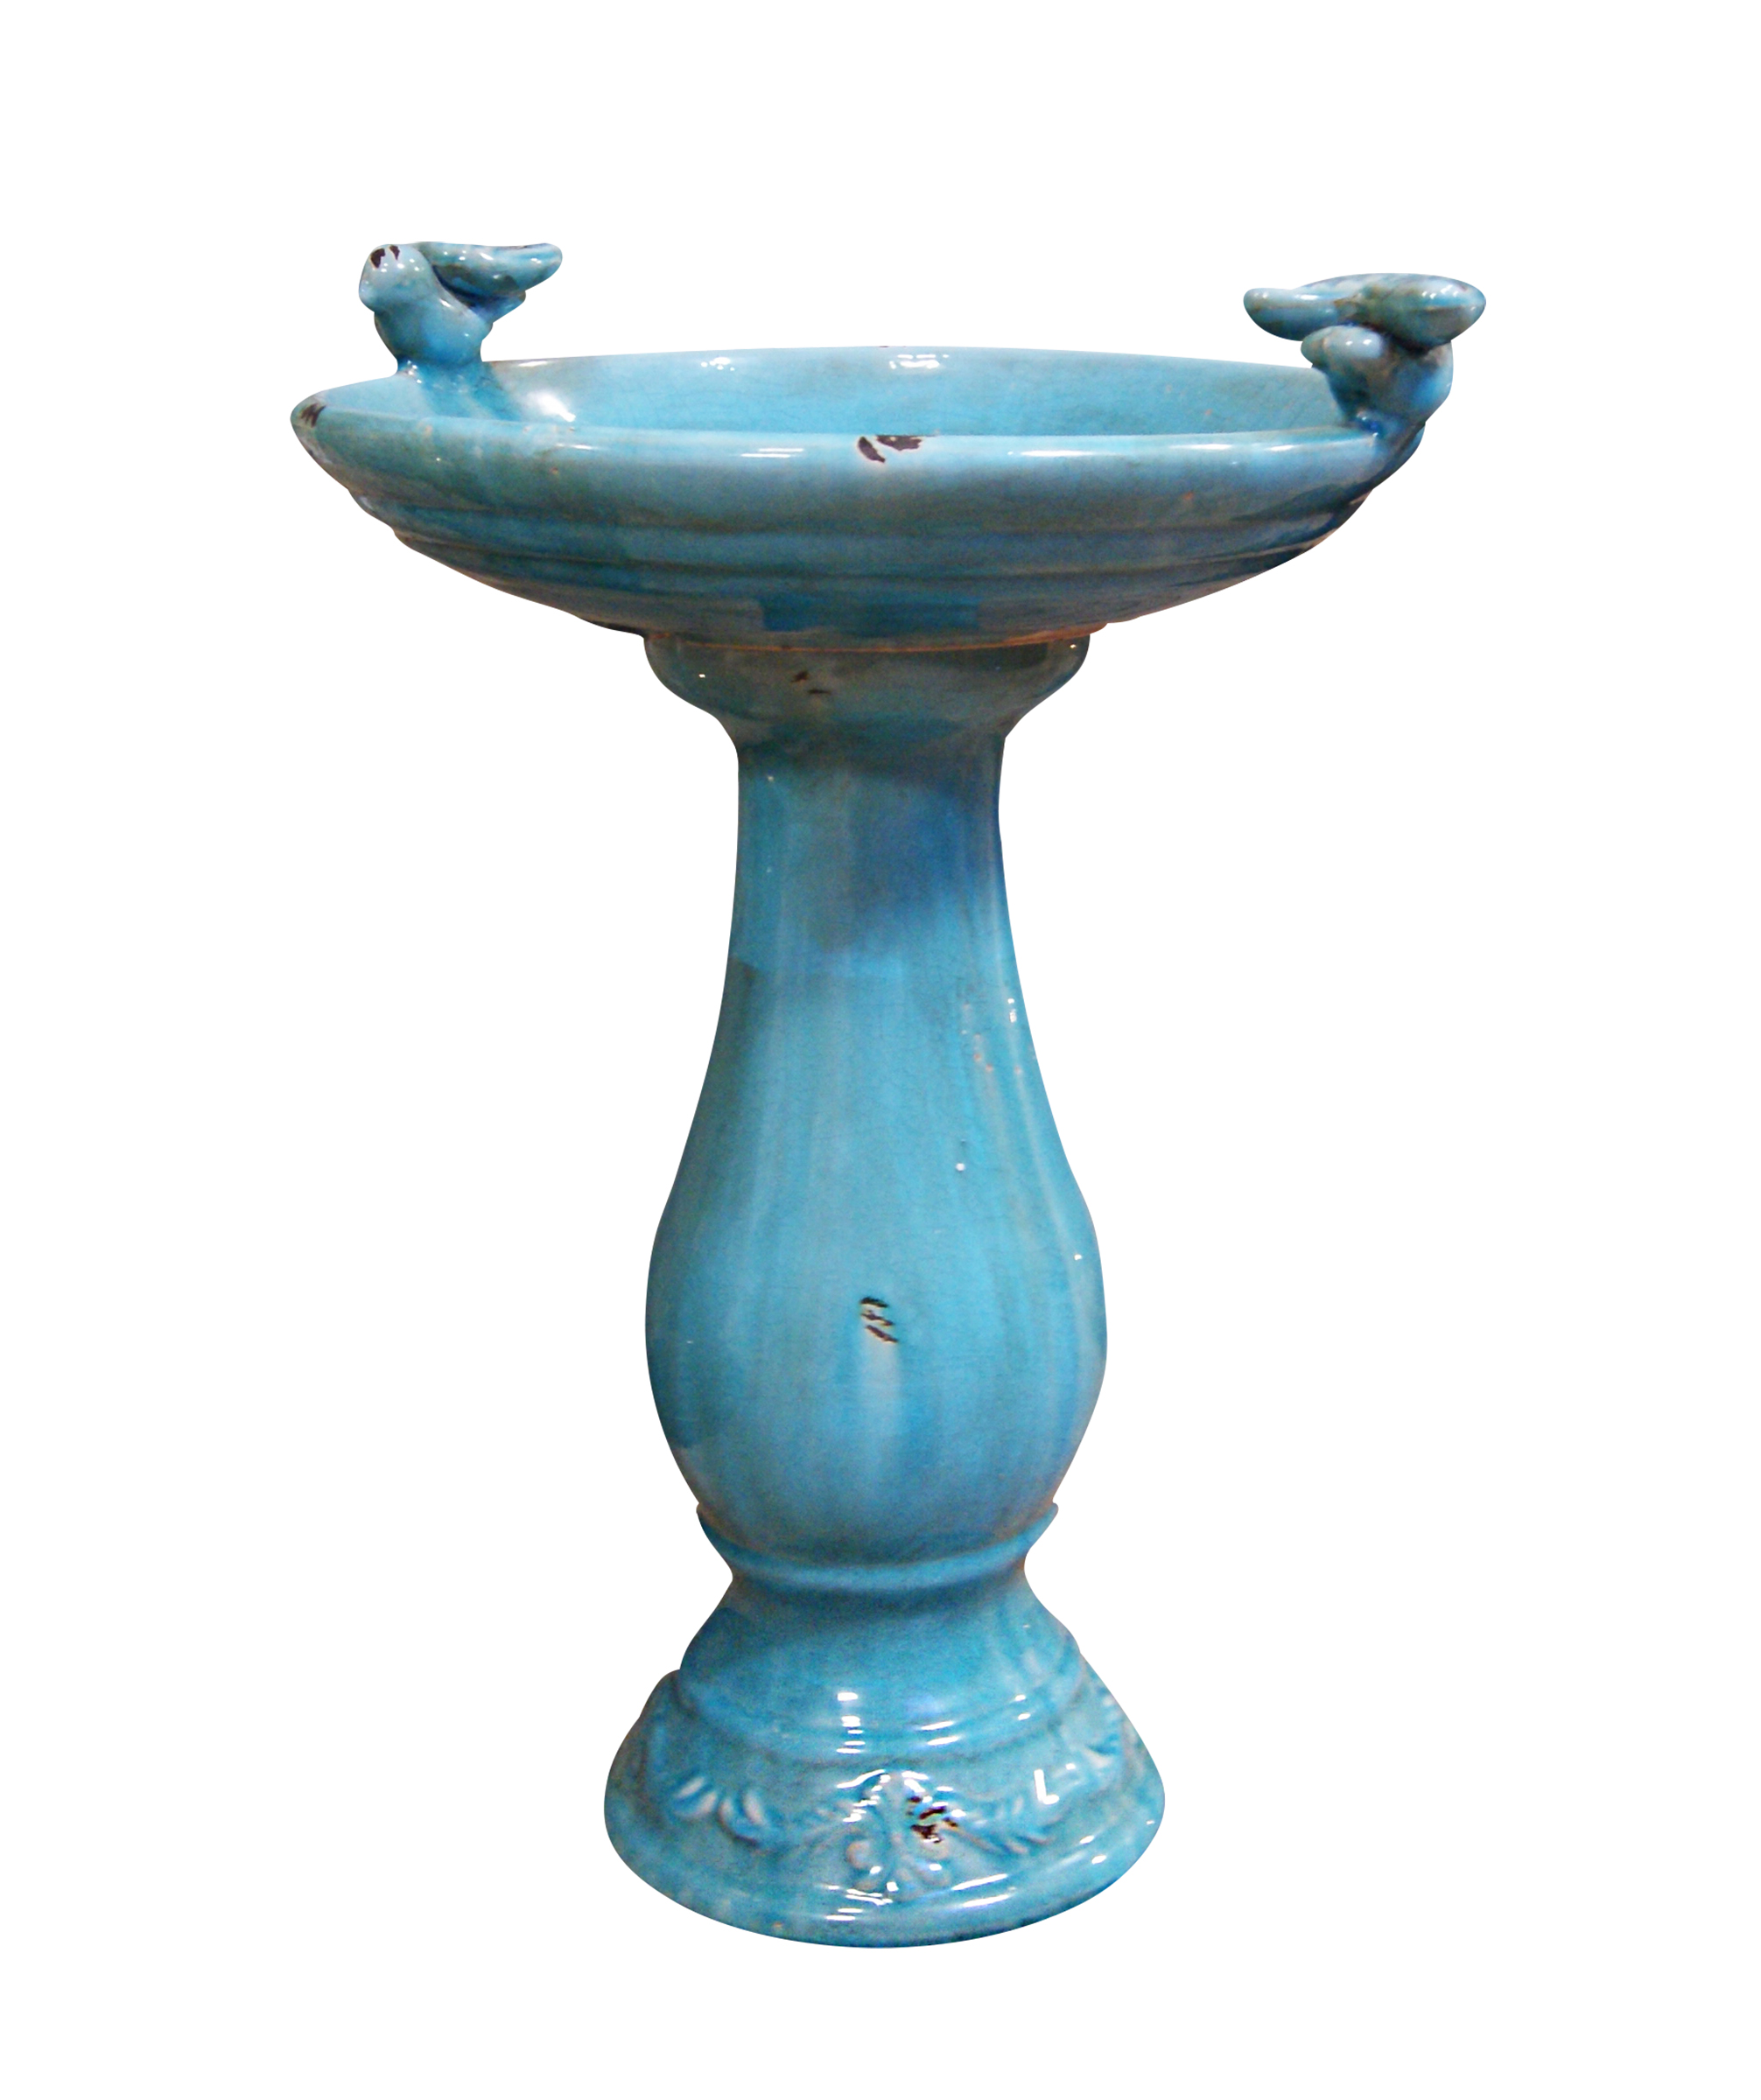 24 Inch Antique Ceramic Birdbath With Birds -Turquoise by Benzara